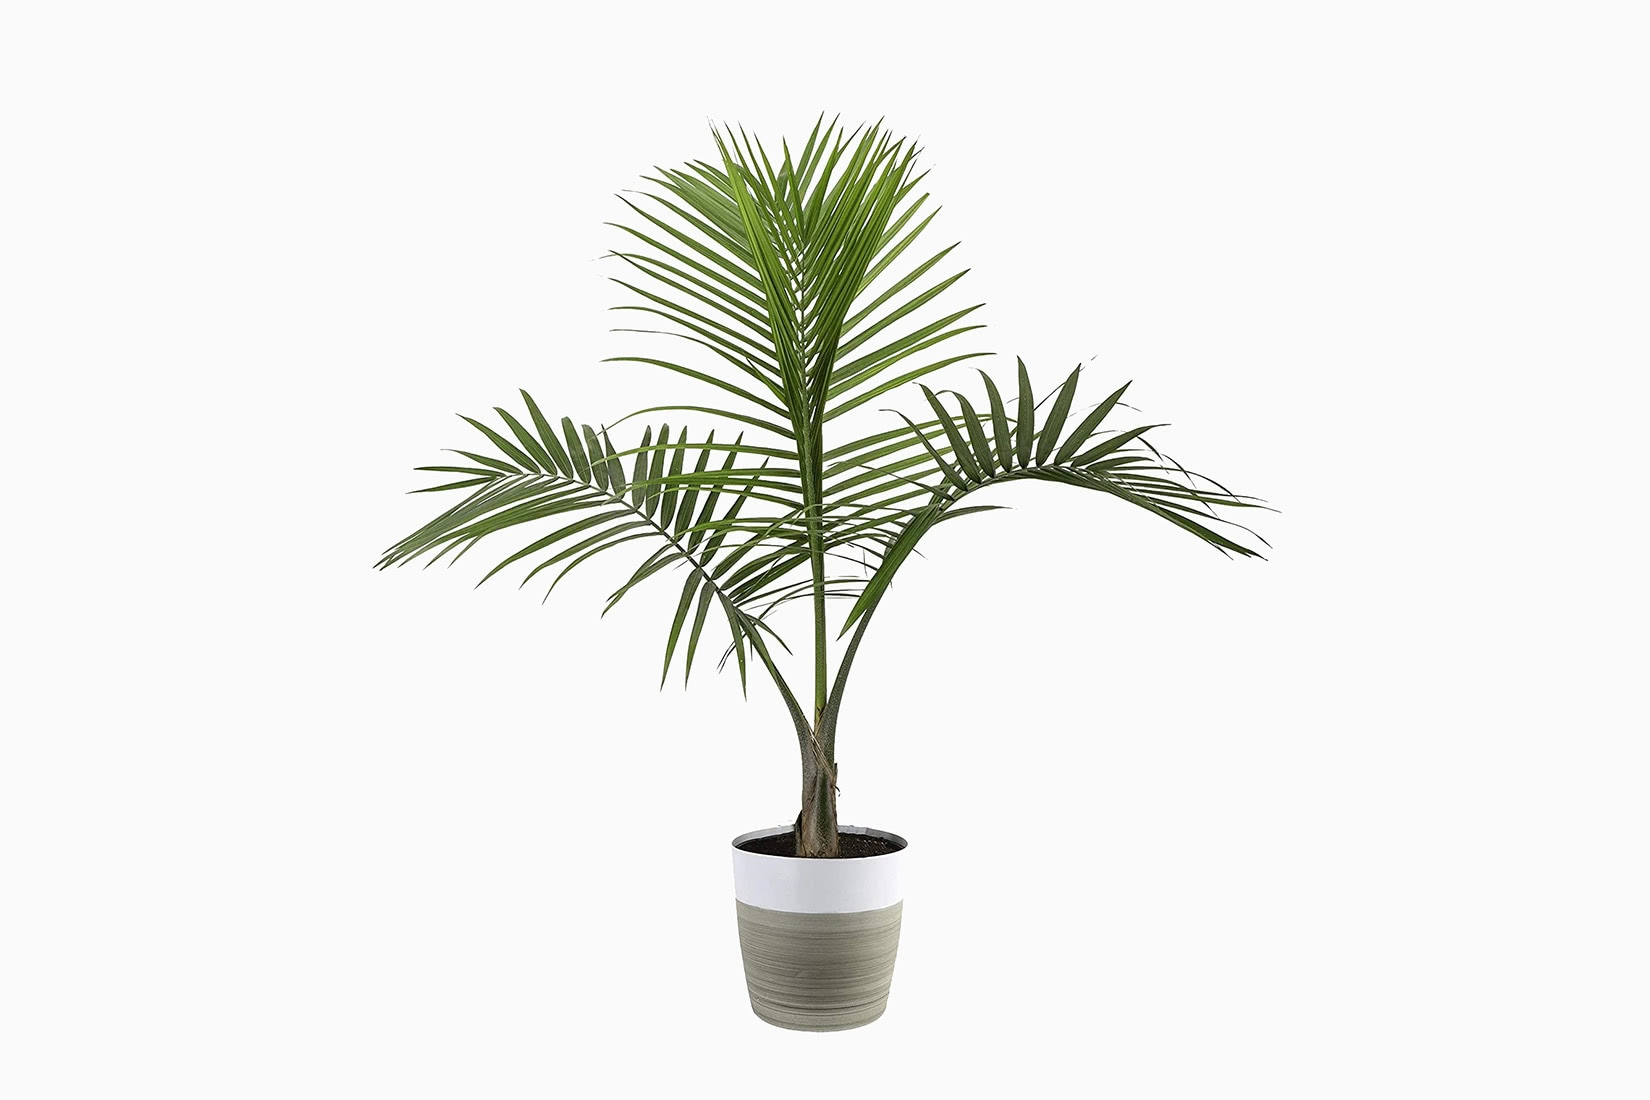 best indoor plants majesty palm - Luxe Digital